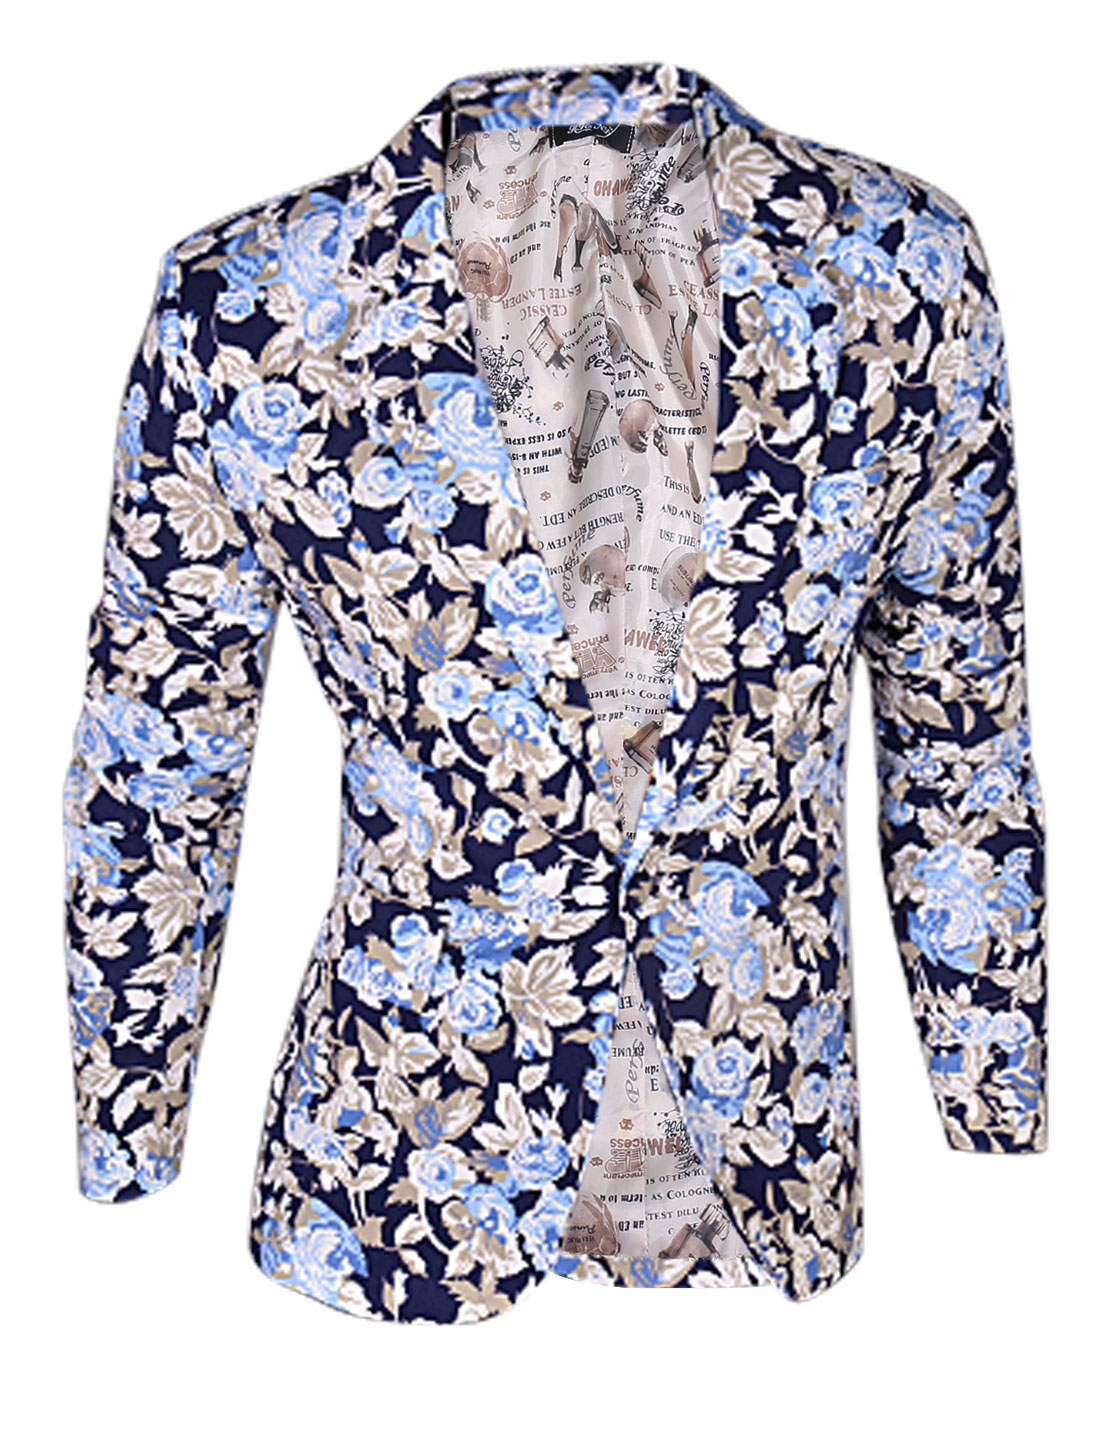 Man Navy Blue Light Blue Floral Prints One Button Clsoure Front Pockets Blazer Jacket M